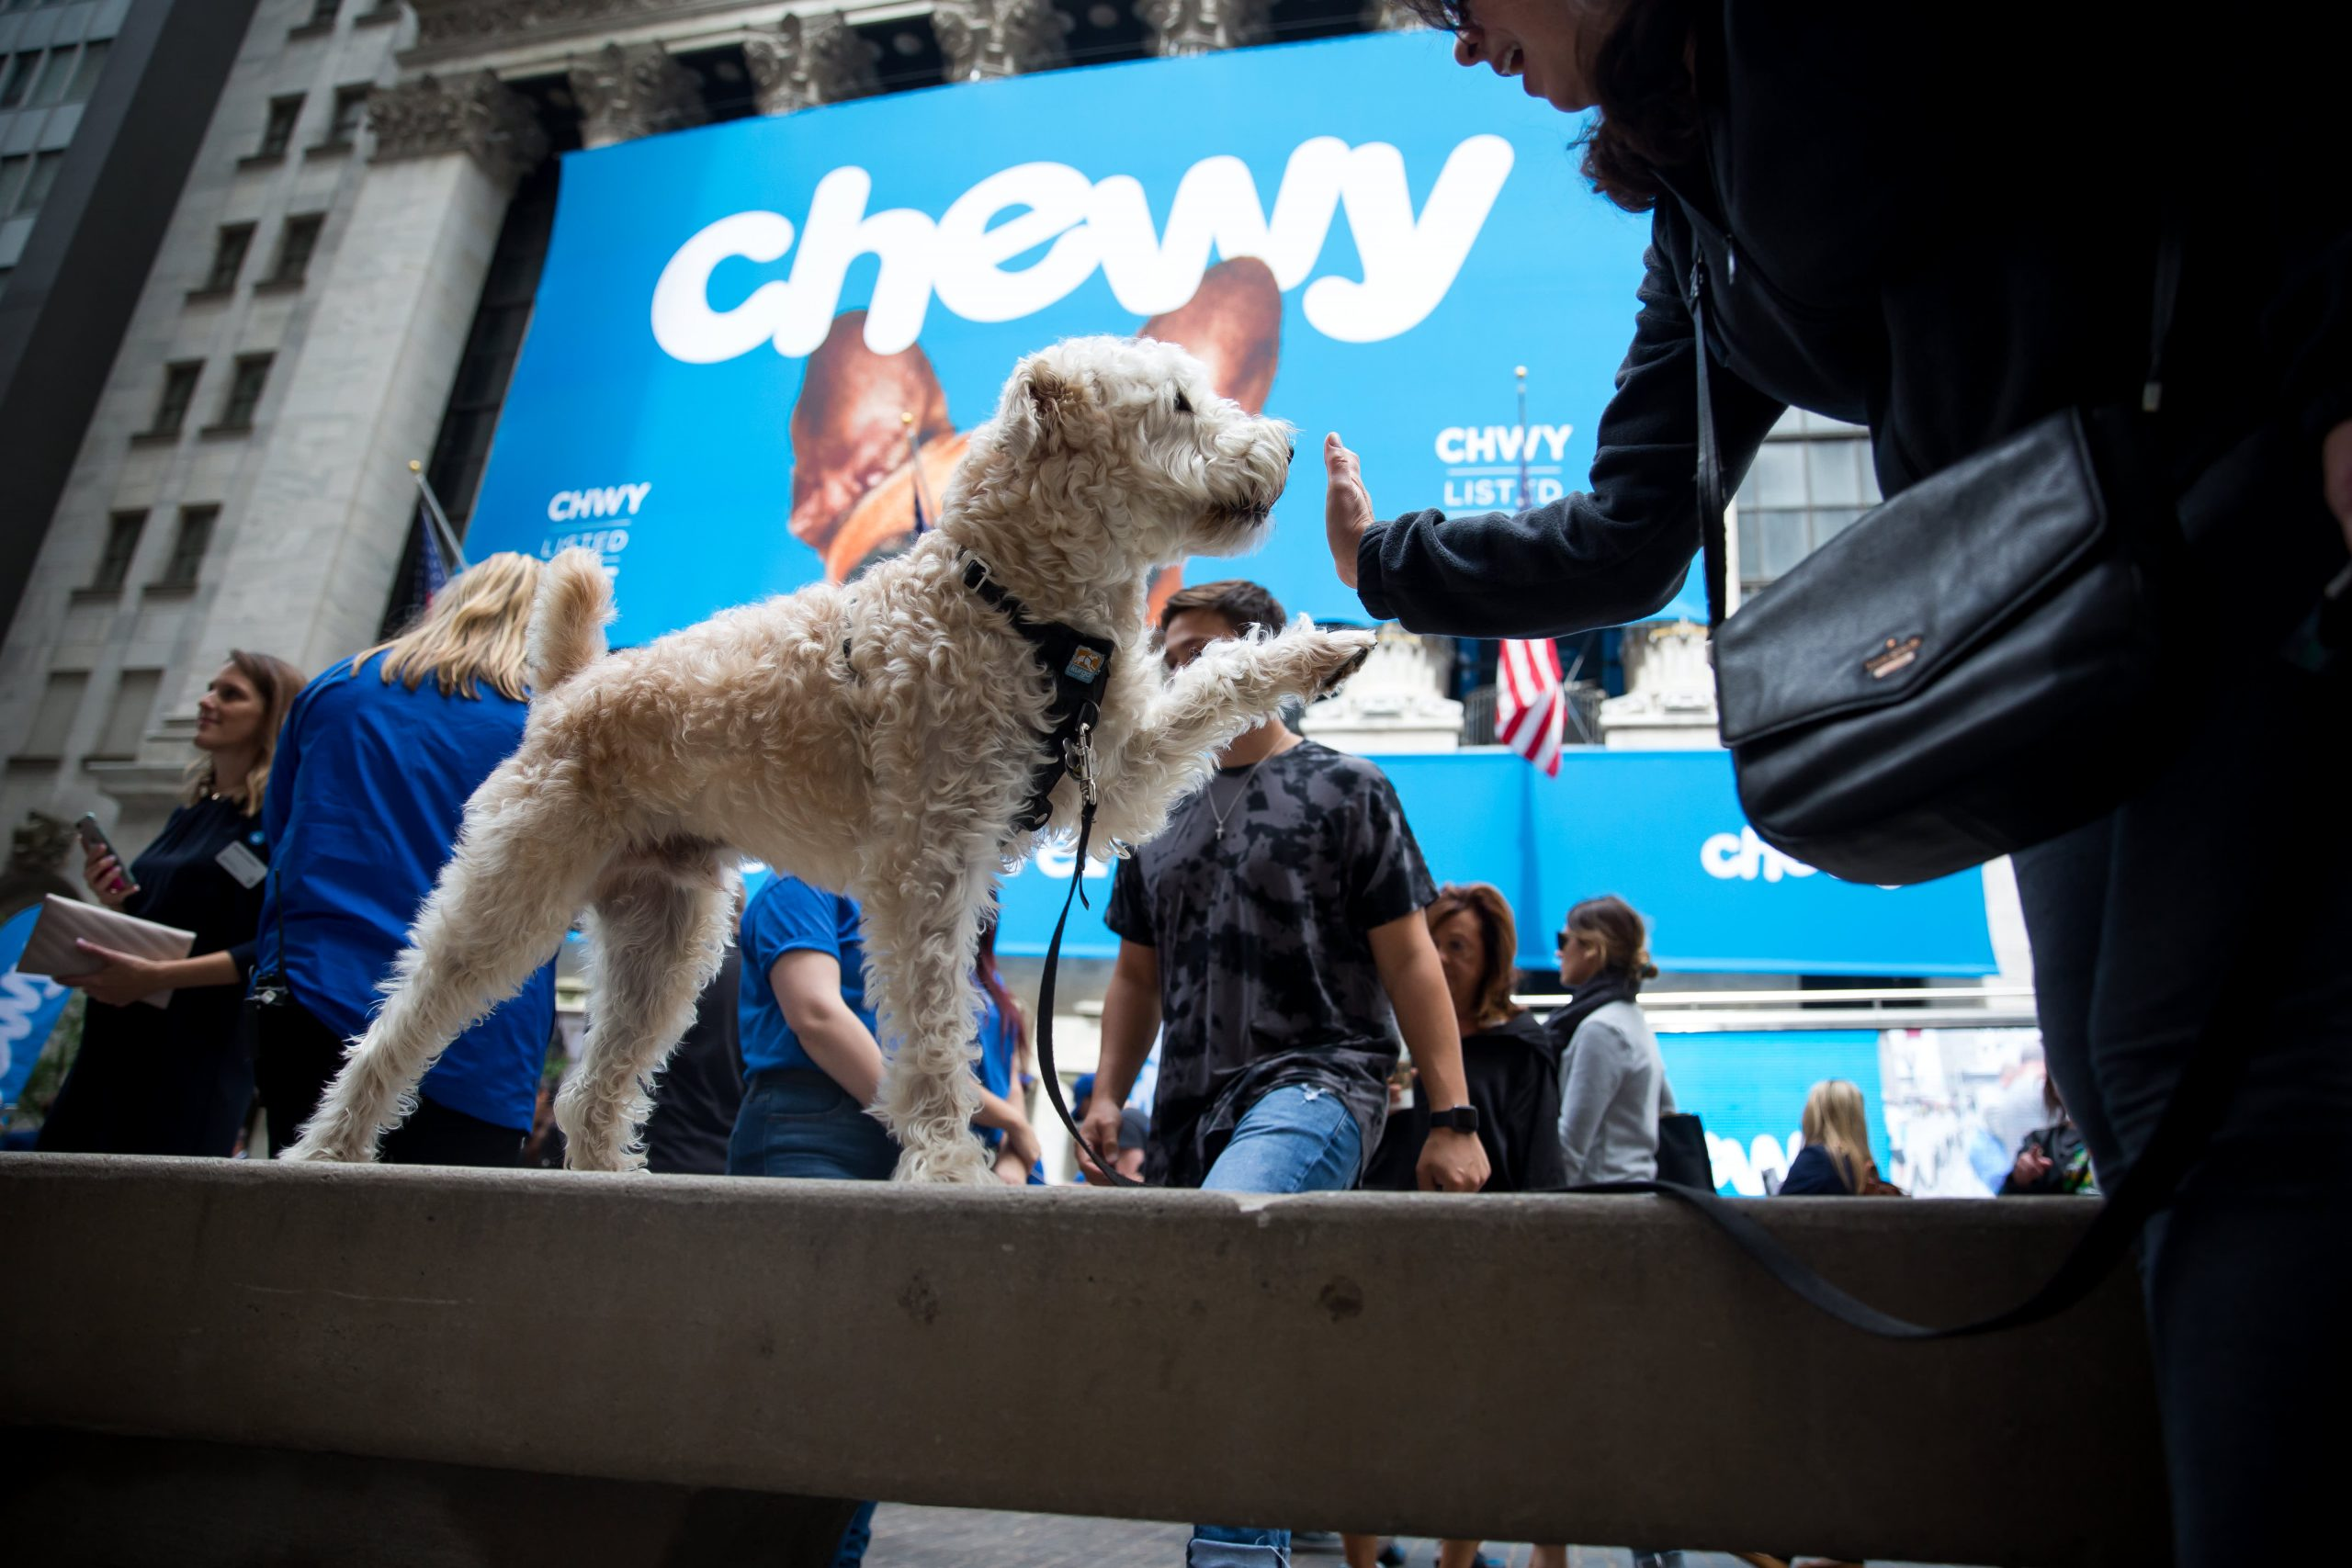 Chewy, Dave & Busters, Vertex Pharmaceuticals and more